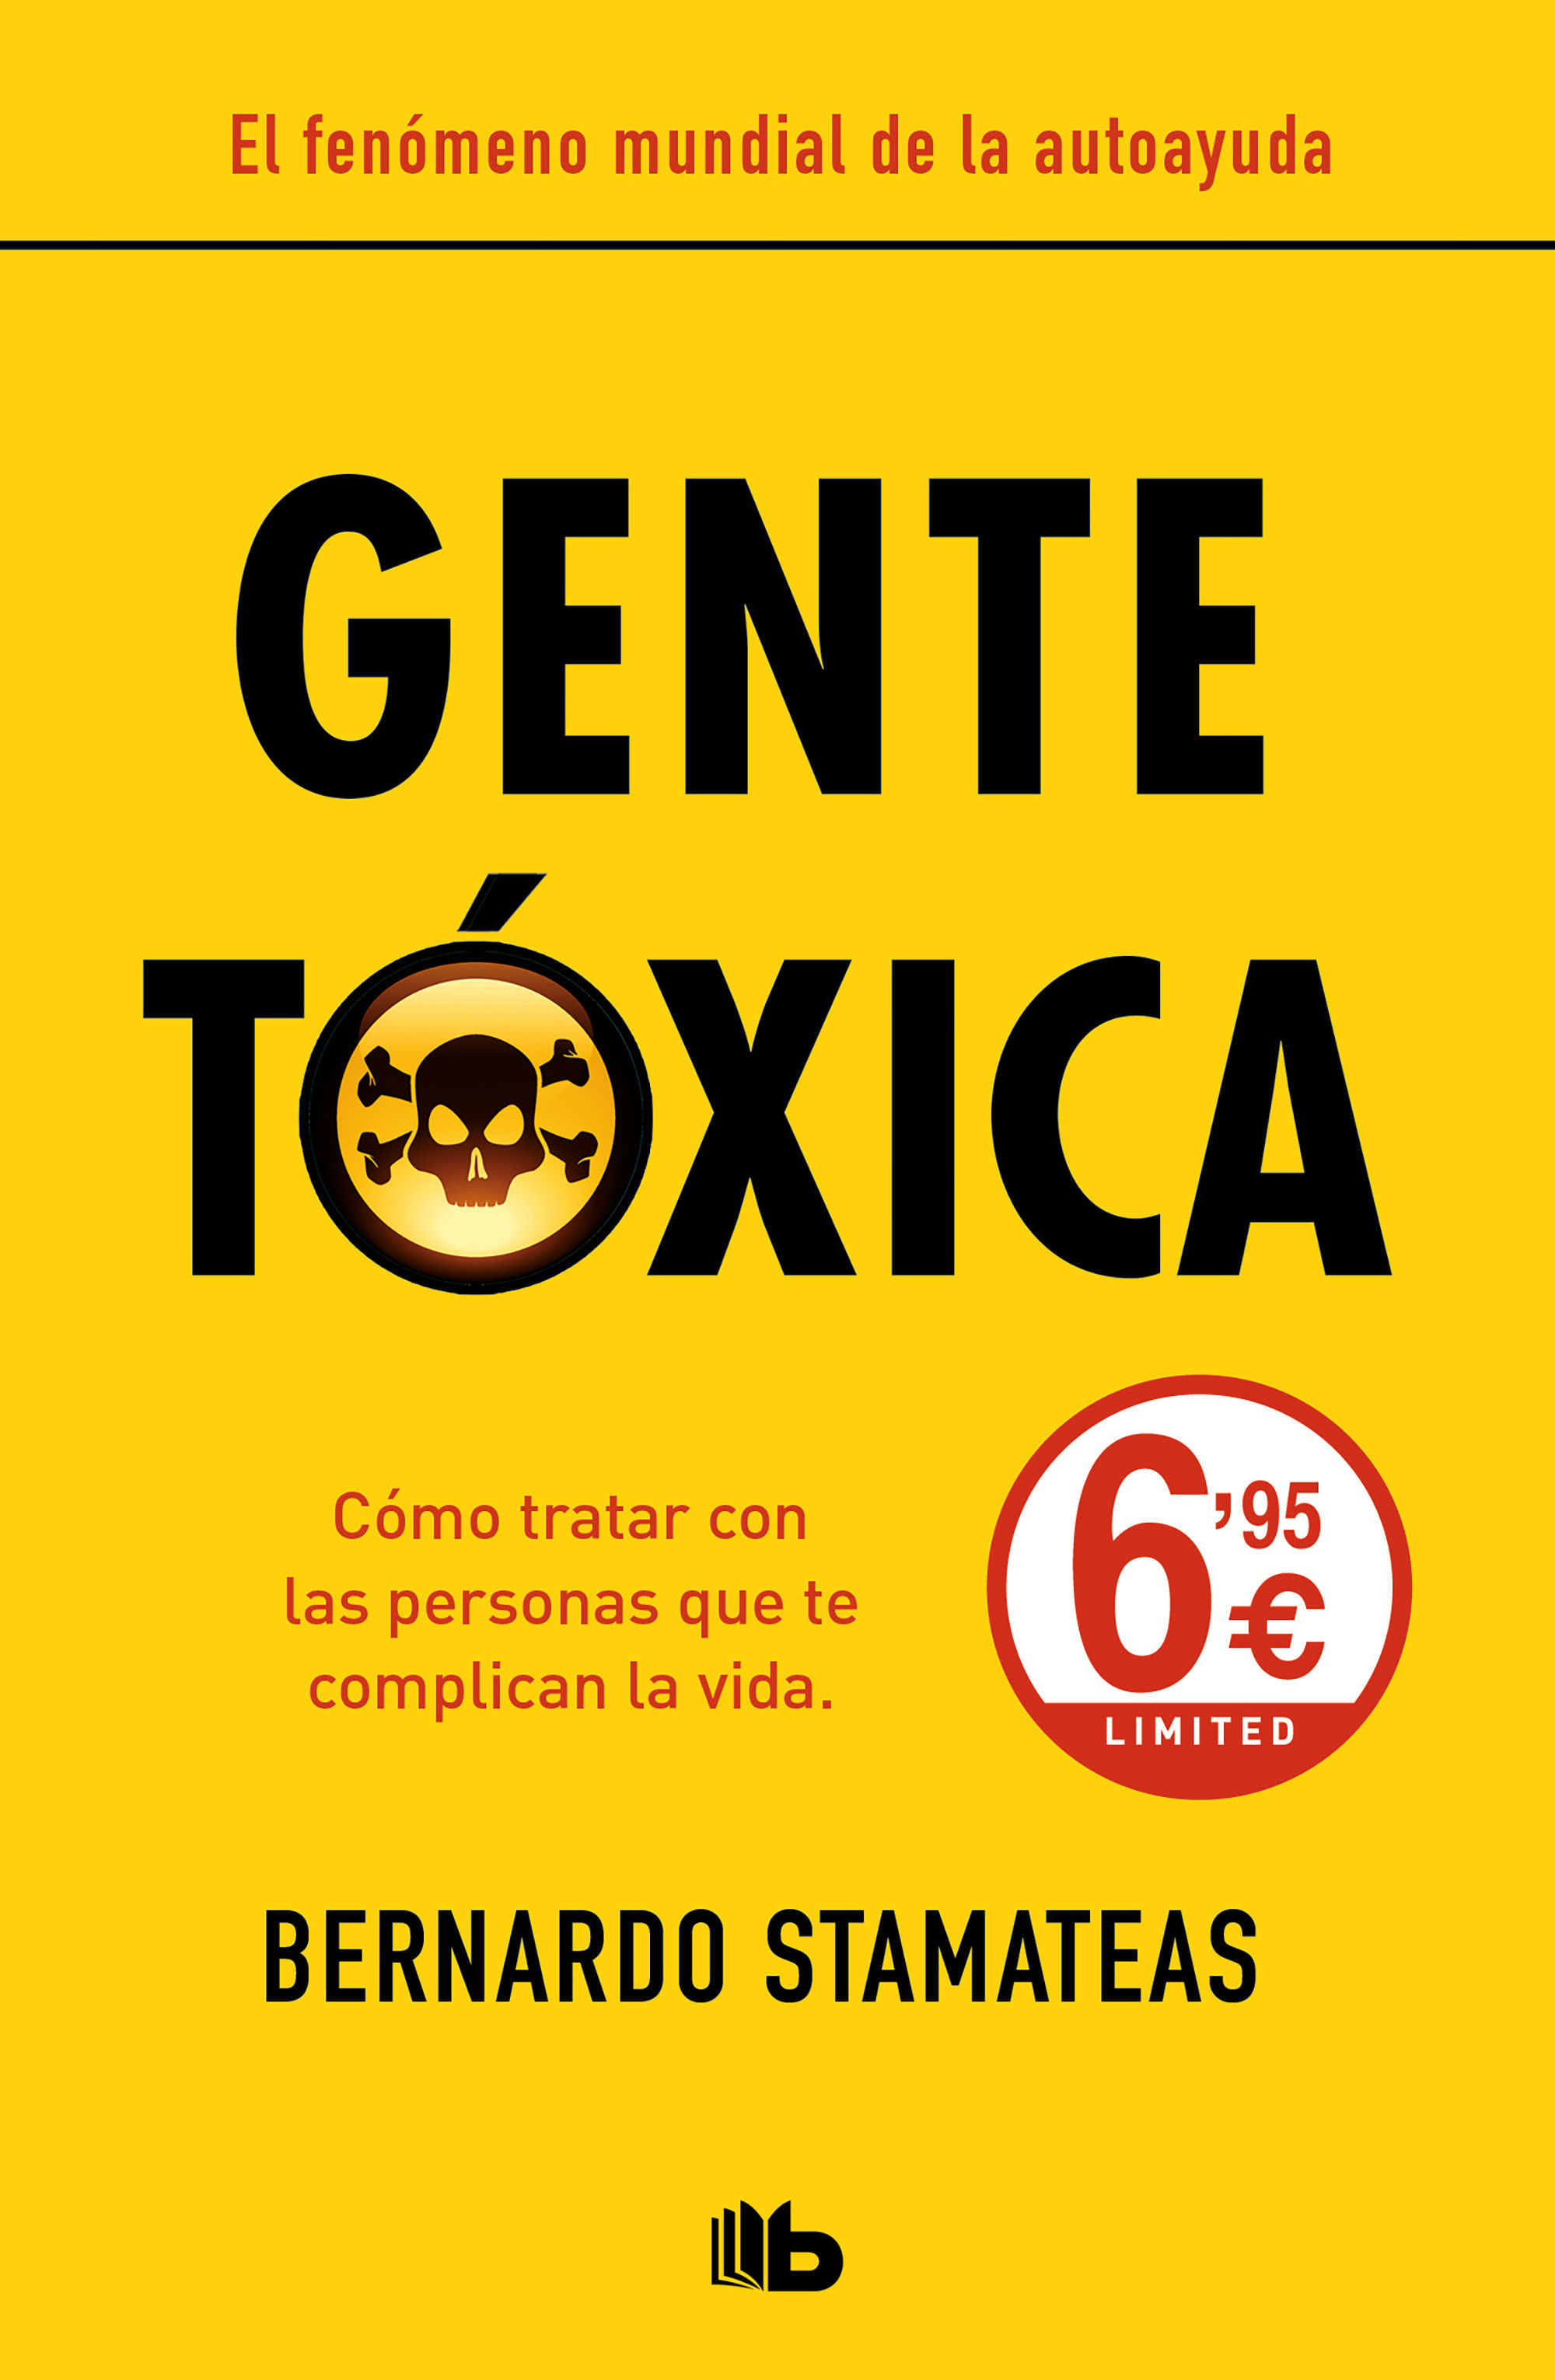 GENTE TOXICA (LIMITED)